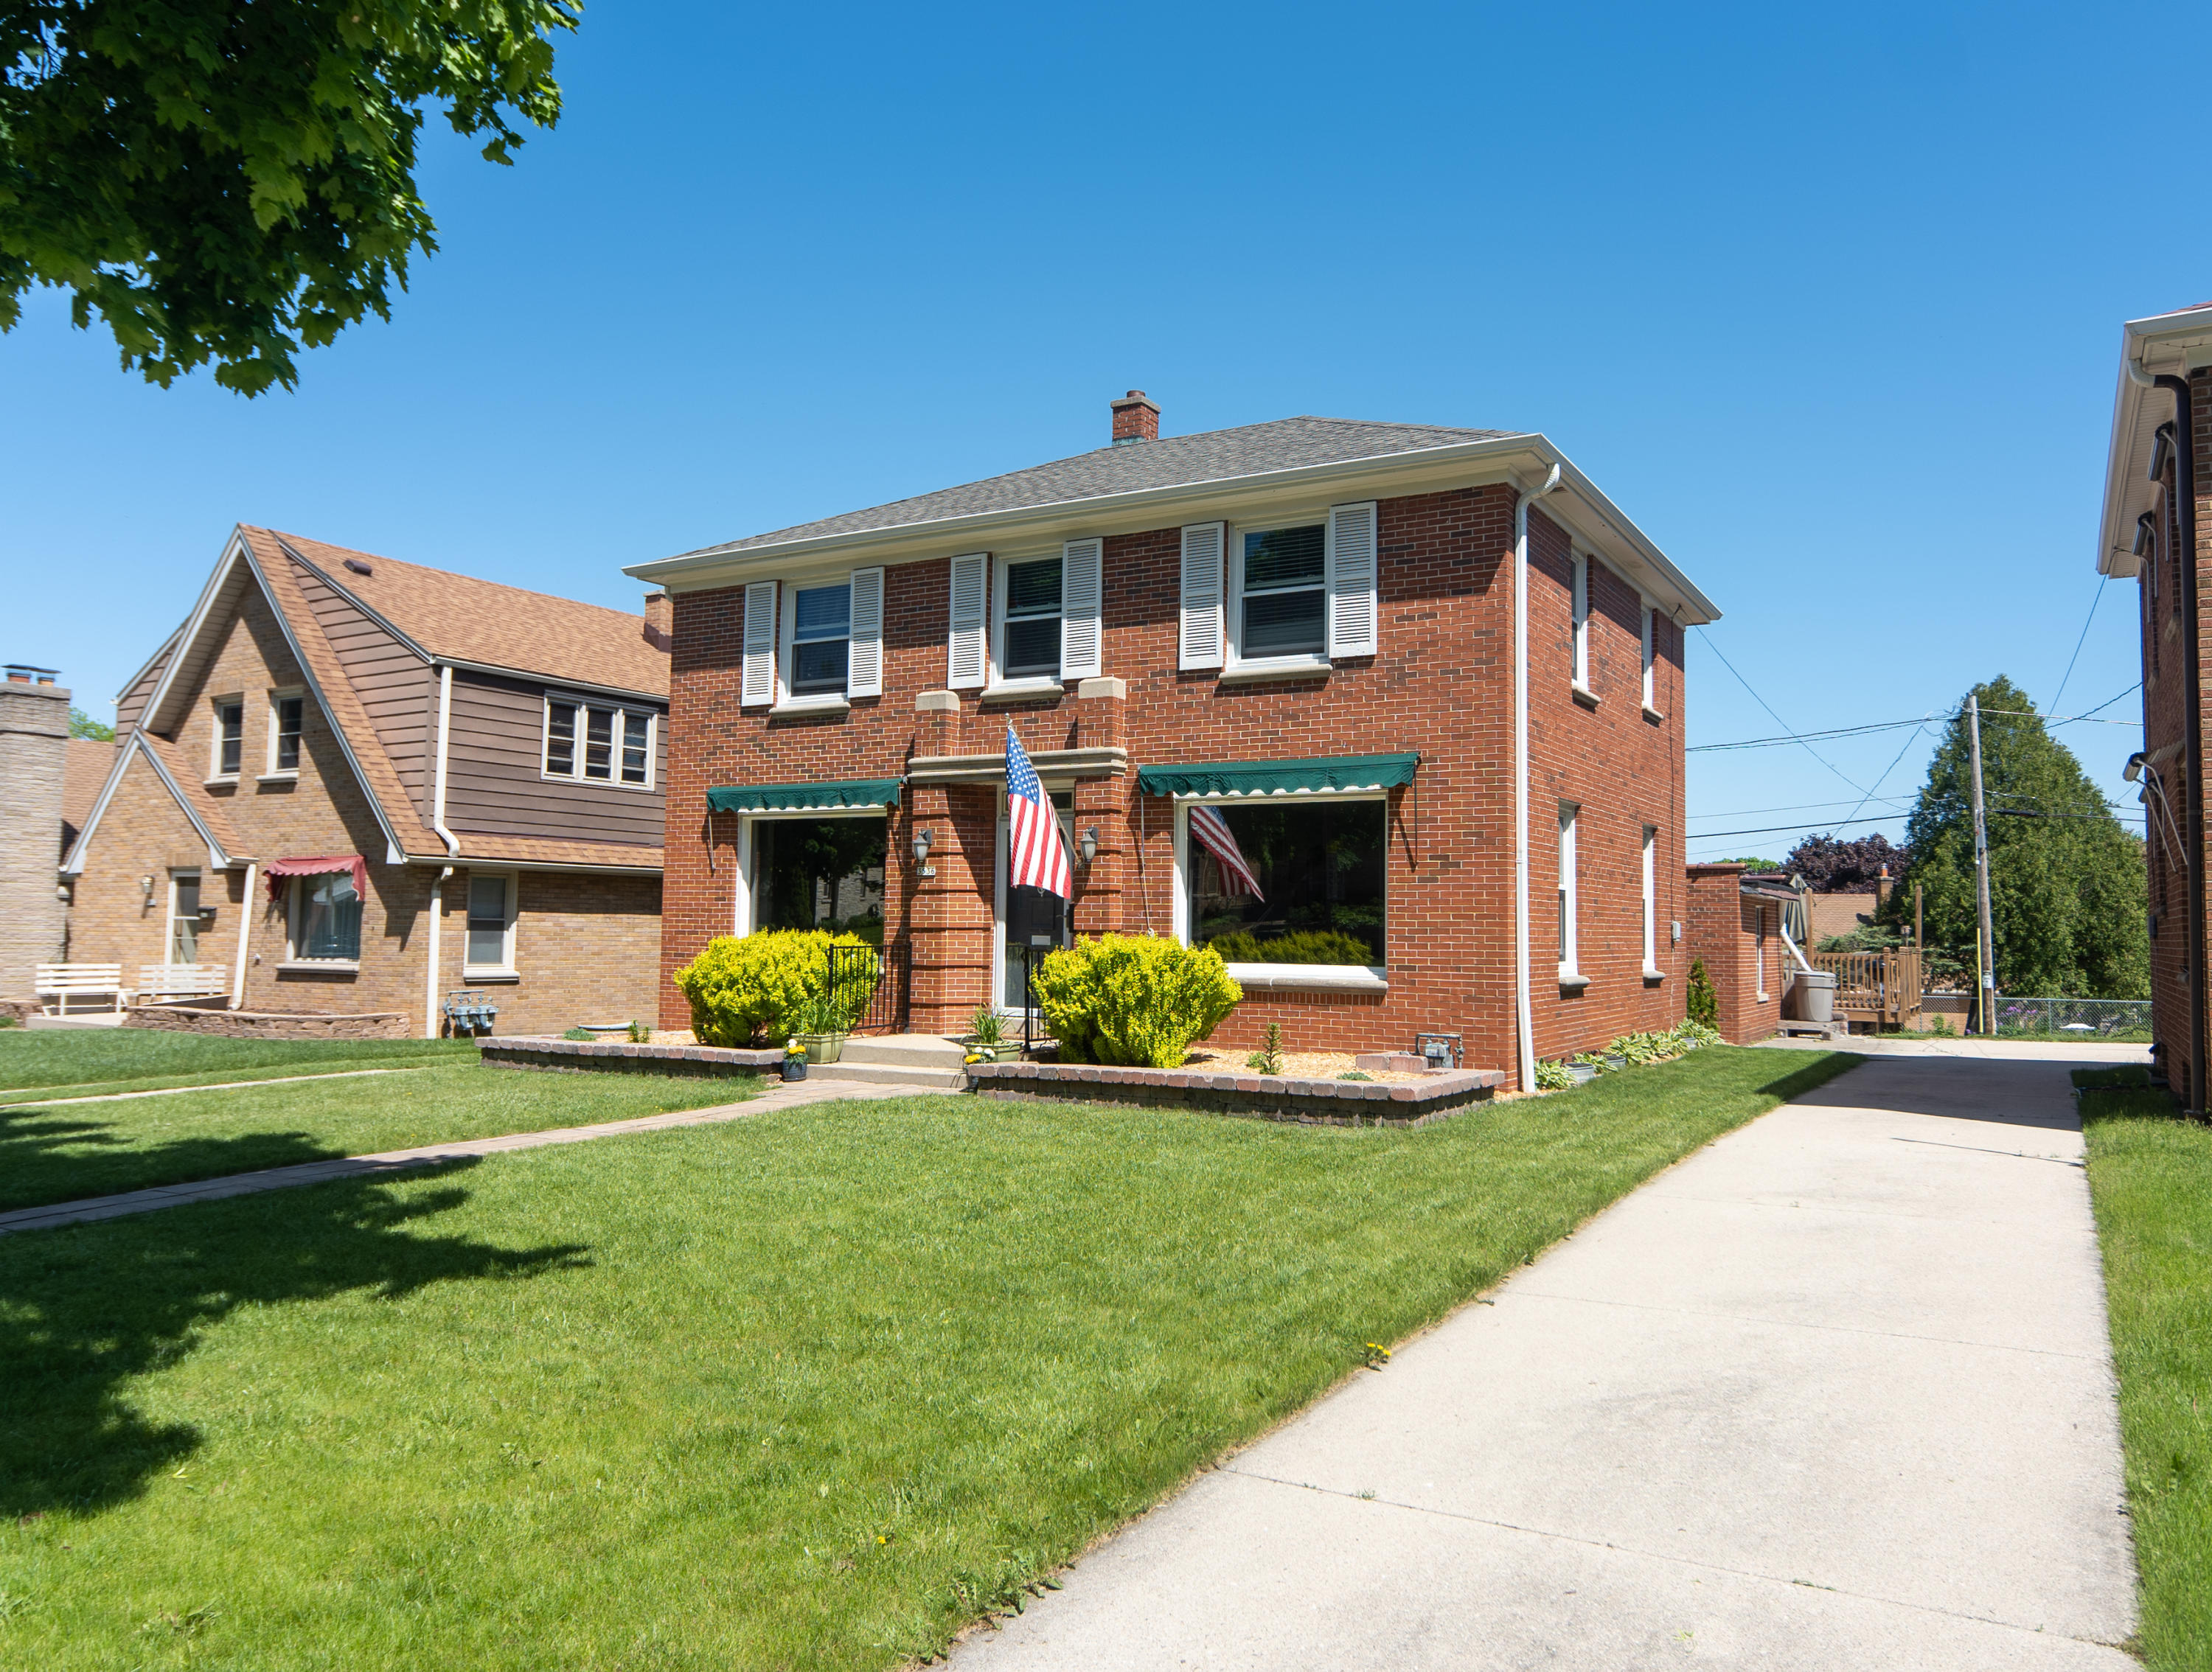 3536 Ohio Ave, Milwaukee, Wisconsin 53215, 3 Bedrooms Bedrooms, 7 Rooms Rooms,1 BathroomBathrooms,Single-Family,For Sale,Ohio Ave,1691493